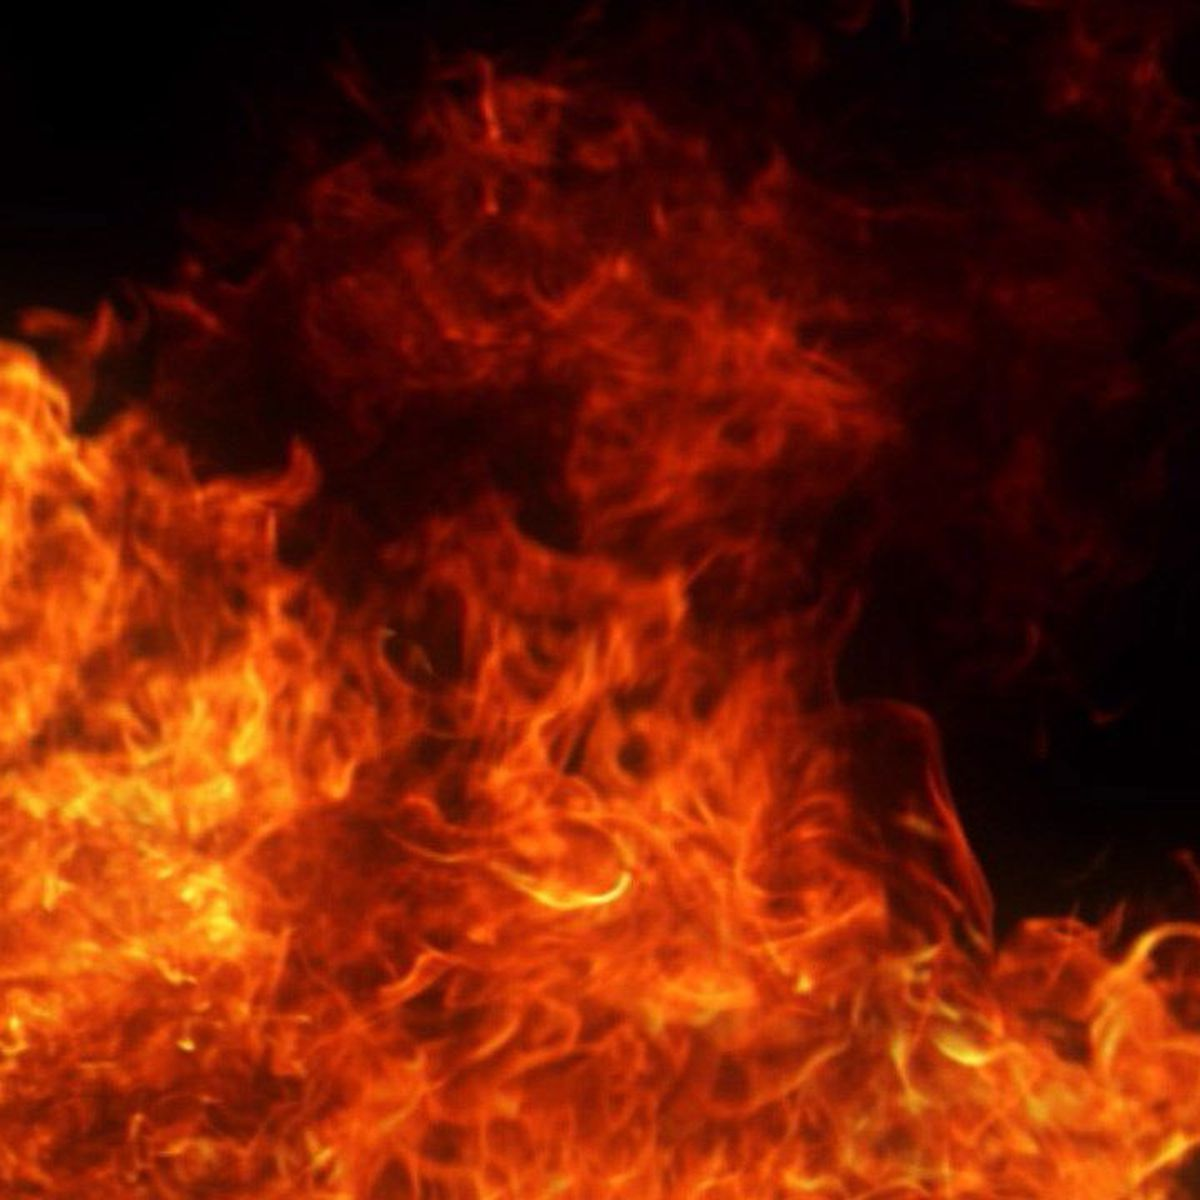 Child injured in early morning apartment fire